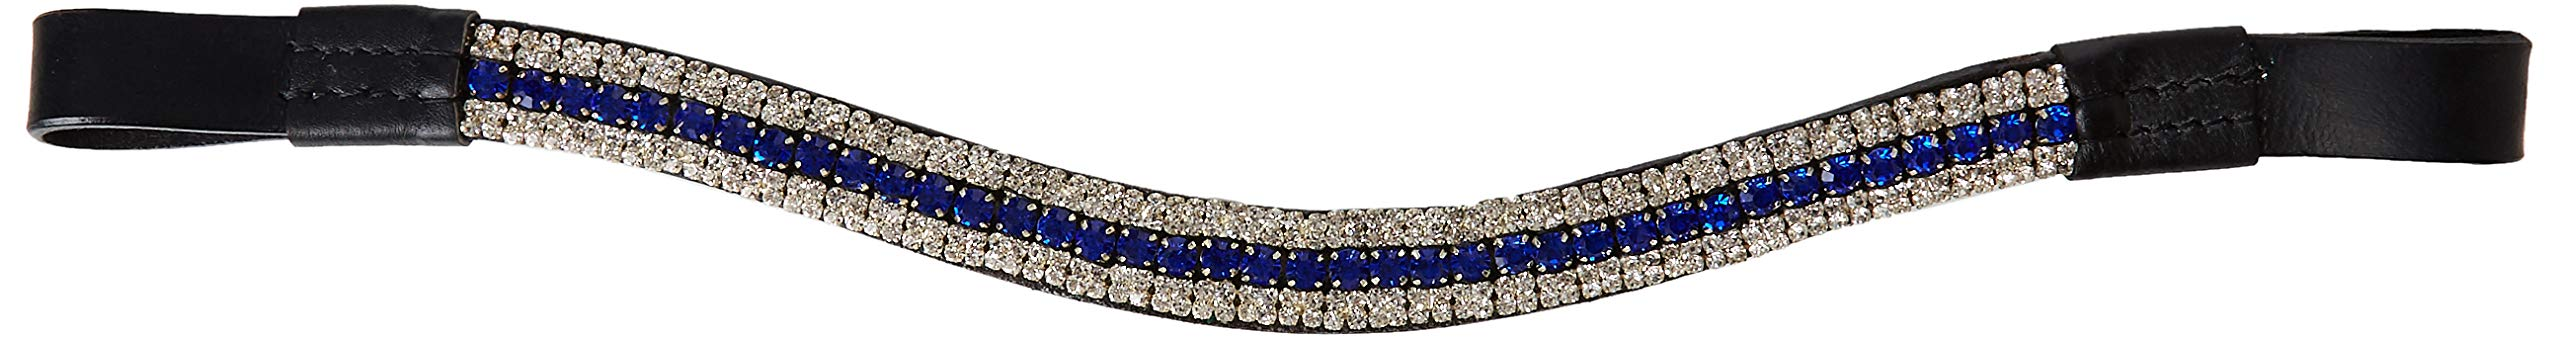 CWELL EQUINE Look U Topaz Coloured Crystal Browband Great Giftoffer Black (Full 16'')